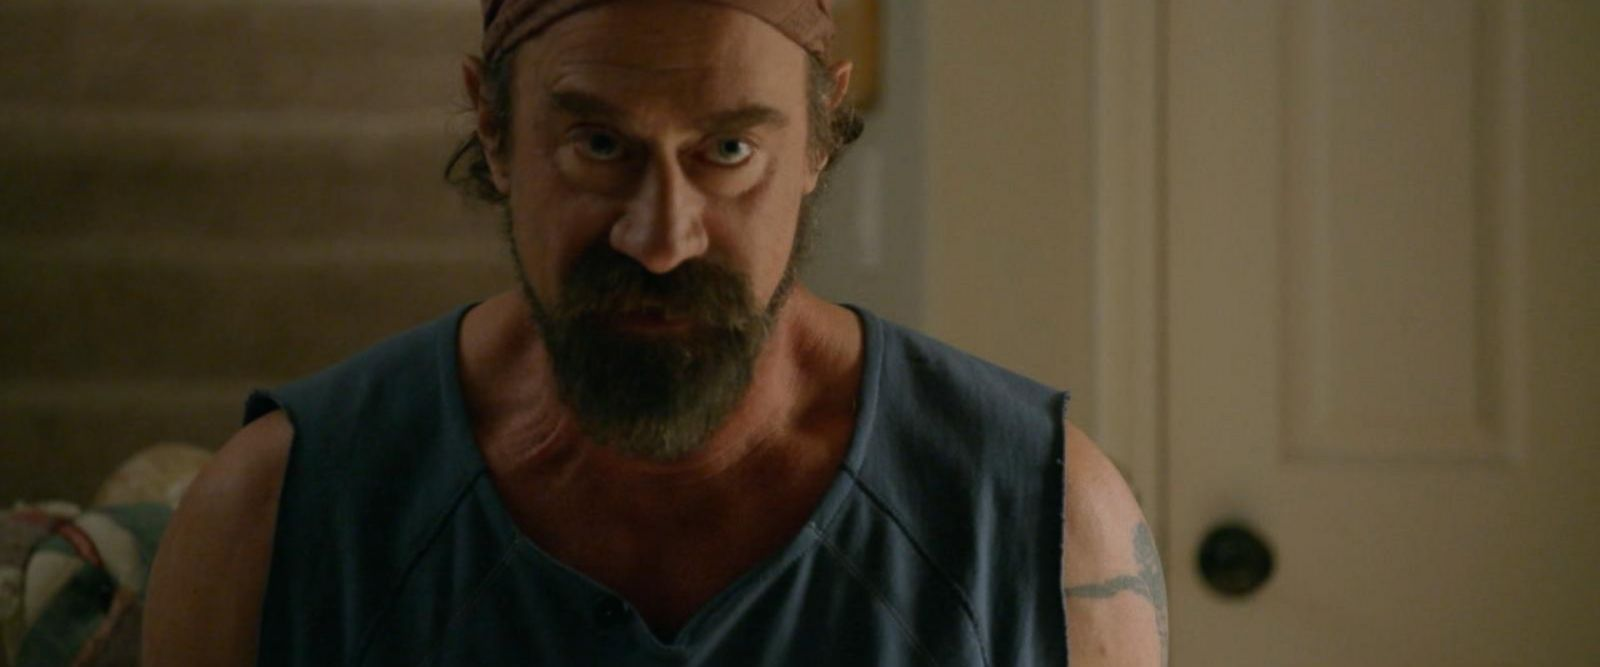 VIDEO: 'It's like going home again': Chris Meloni dishes on 'Wet Hot American Summer' remake